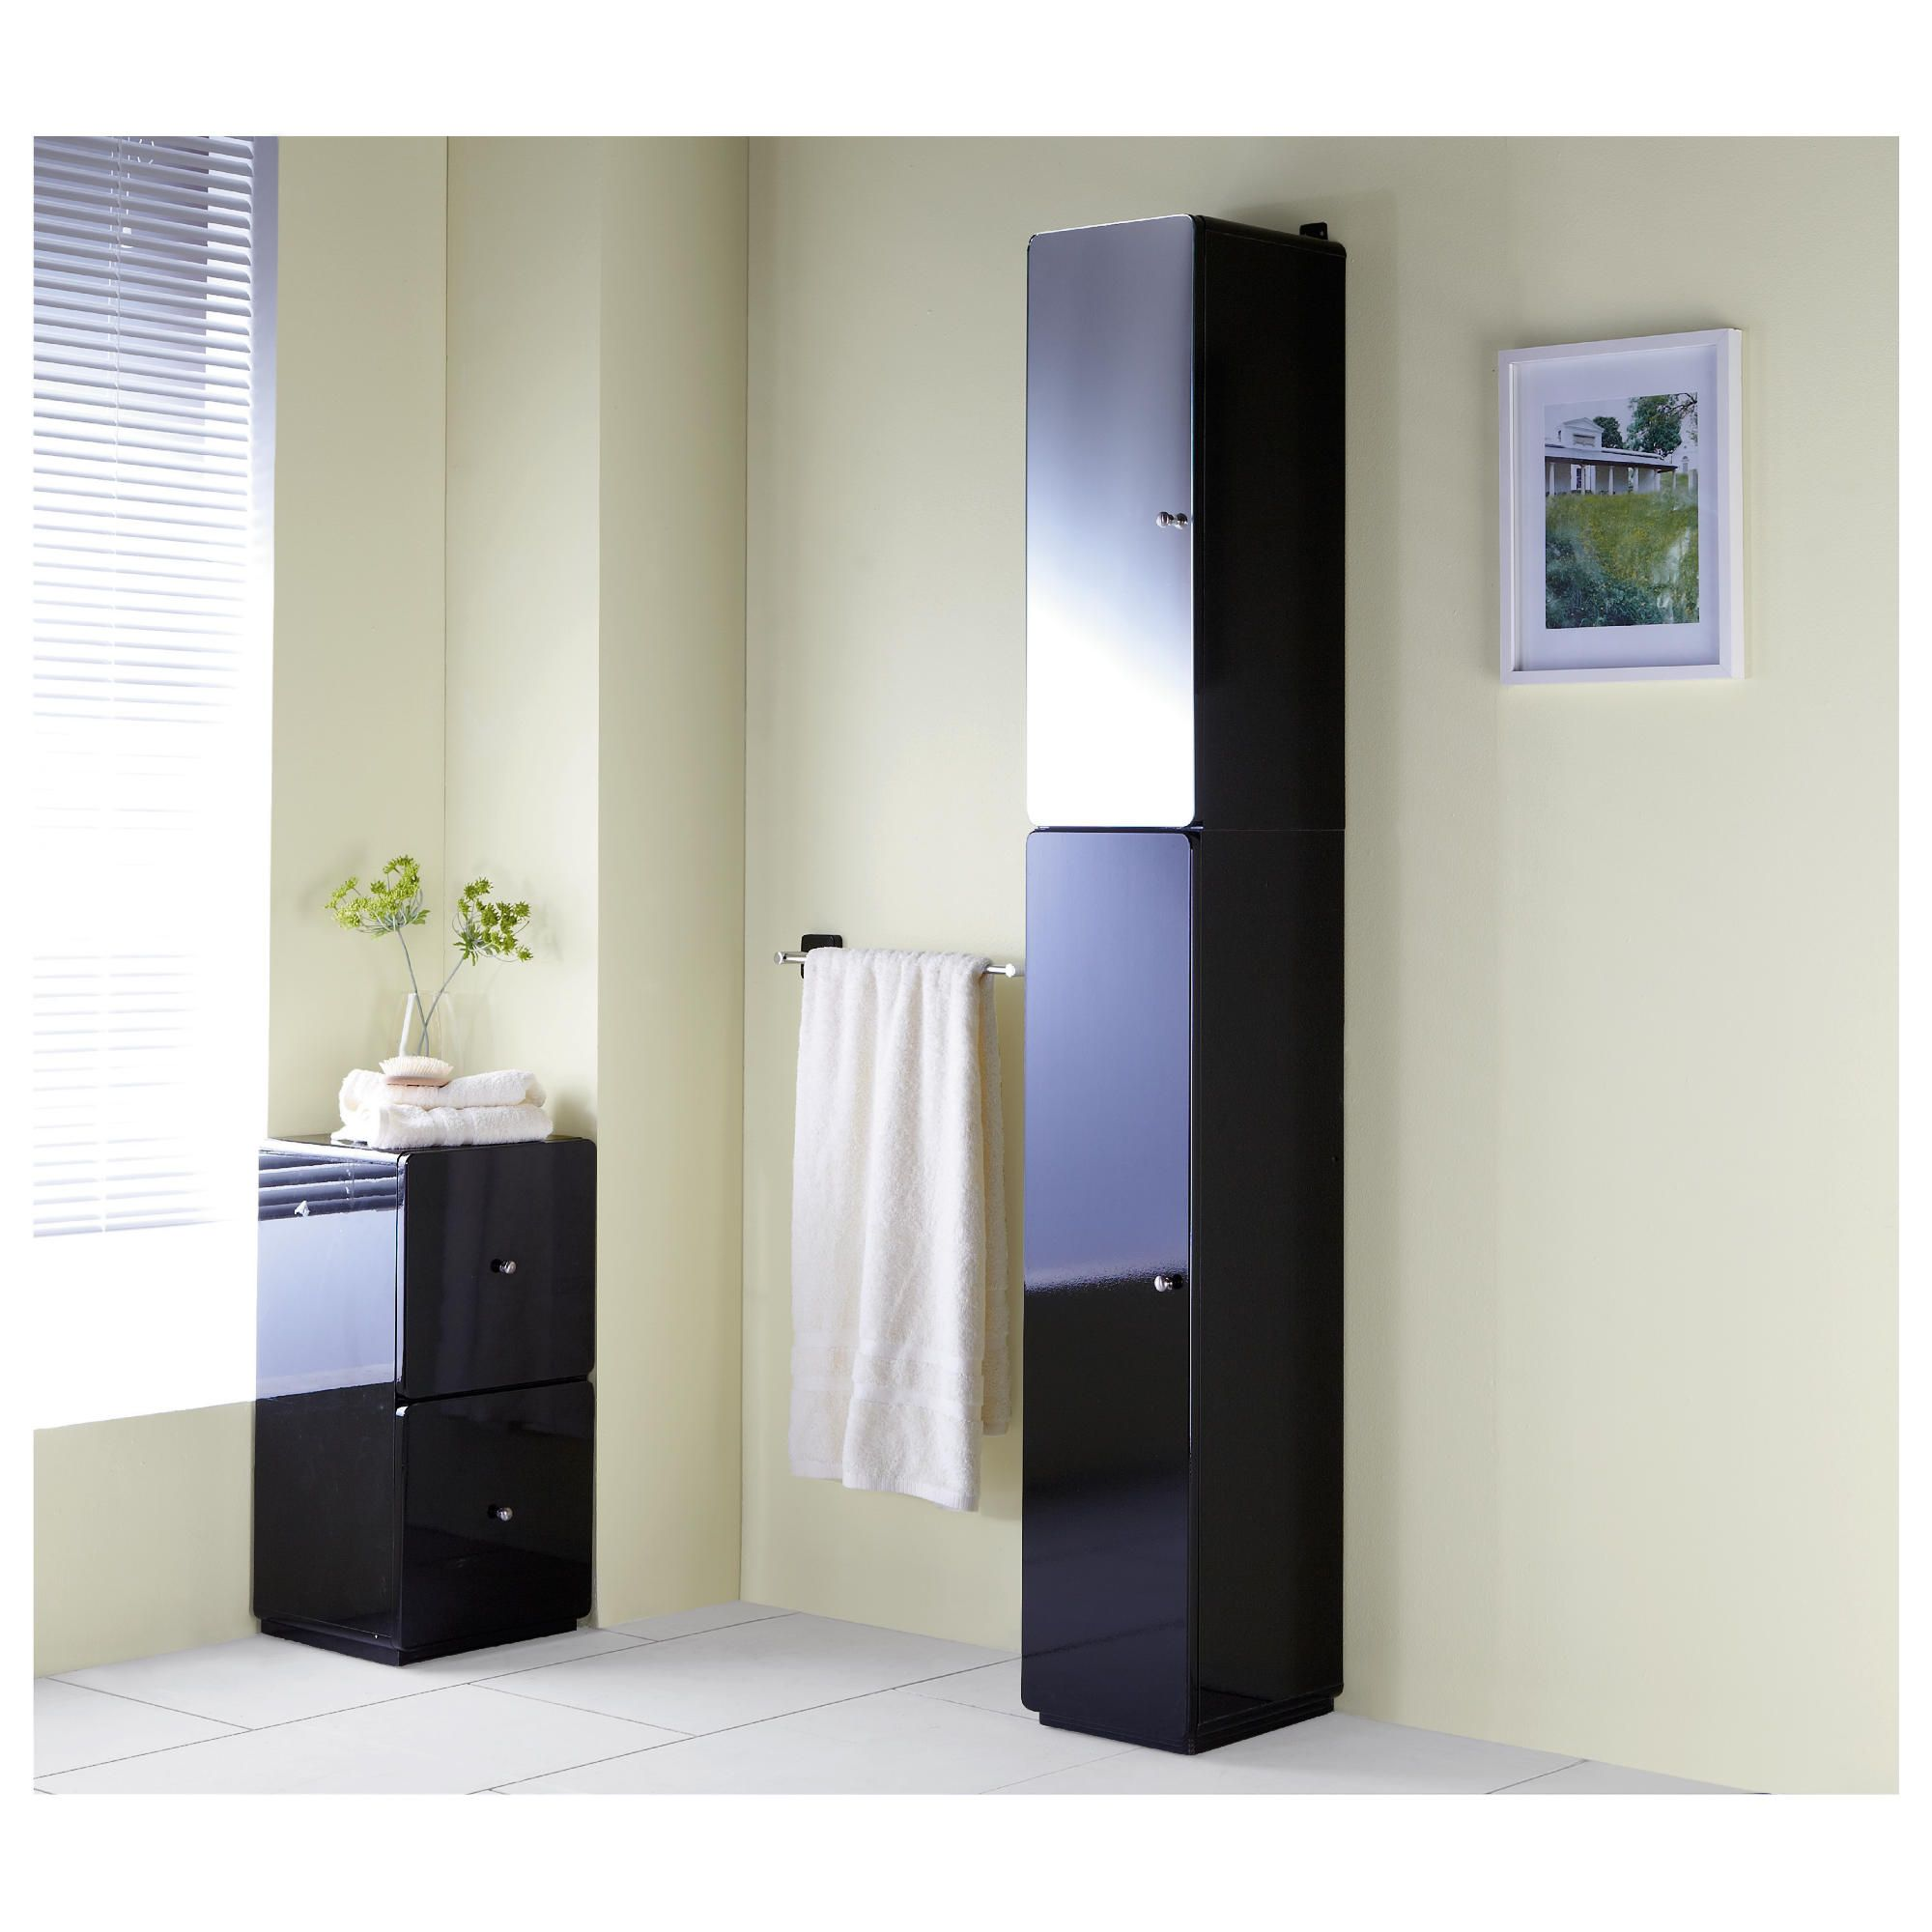 Home and garden bathroom stockholm white gloss under sink cupboard special offers - Bathroom cabinets black gloss ...